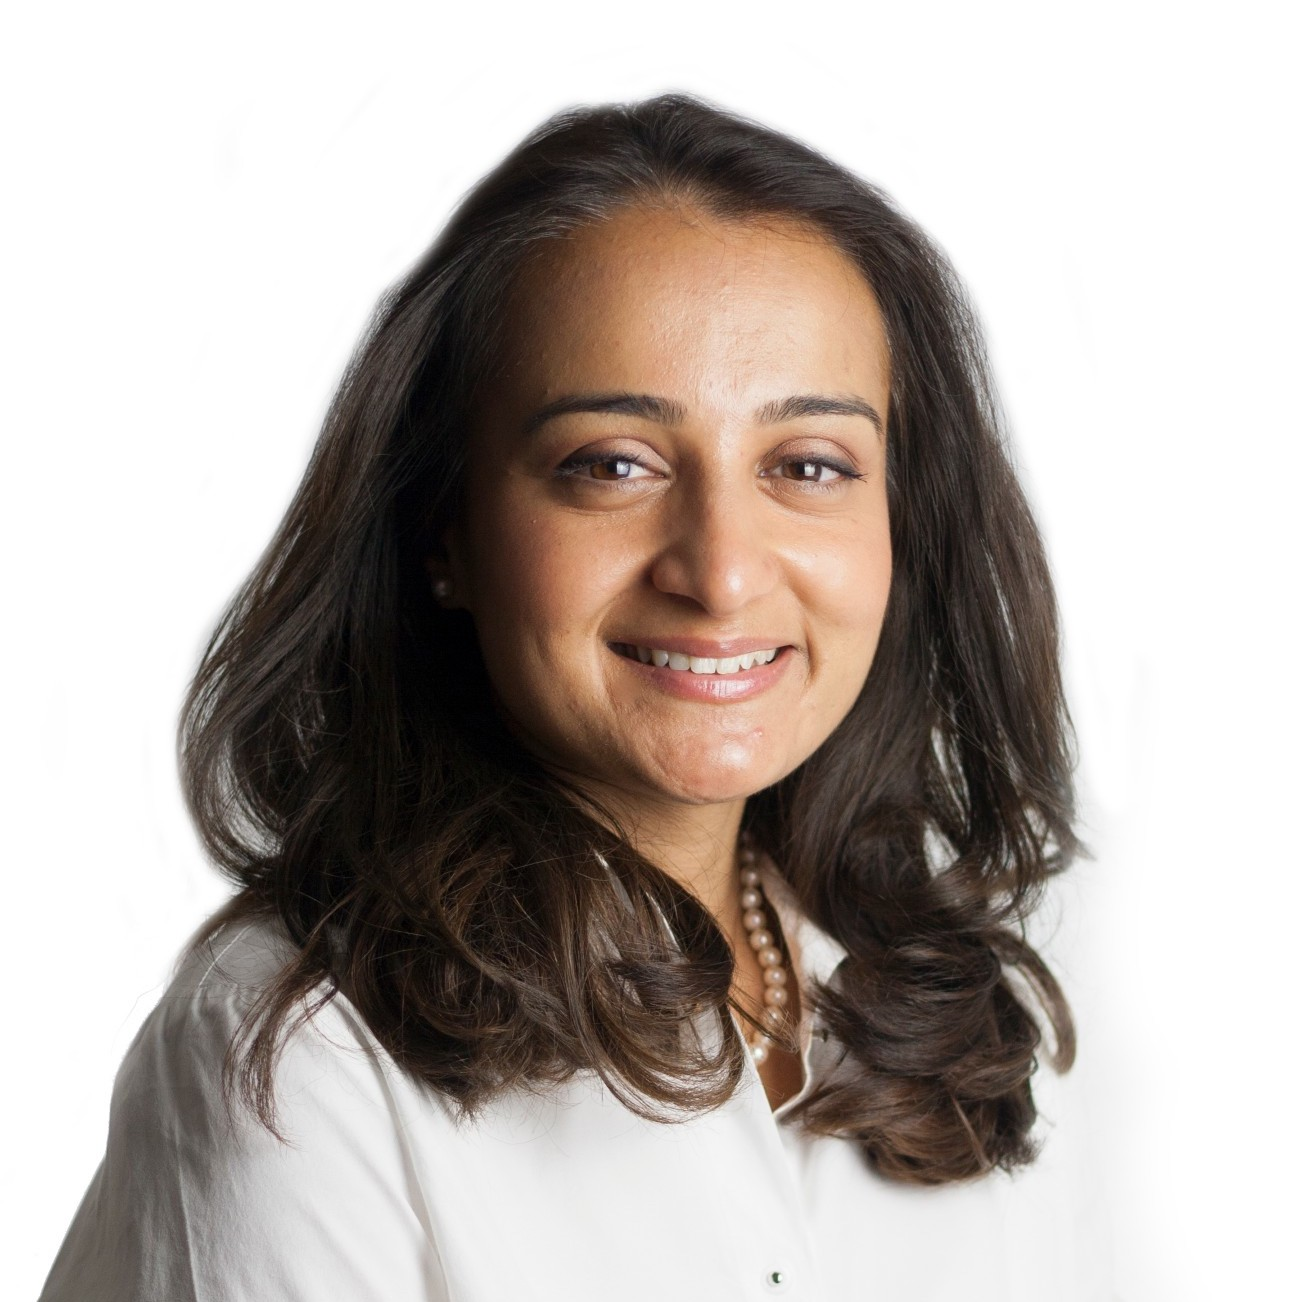 """Knowing that someone can walk into your clinic in agony and twenty minutes later walk out pain free, feeling as if they are floating on air, makes my job so rewarding."" - HEENA PATEL, PODIATRIST & OWNER"